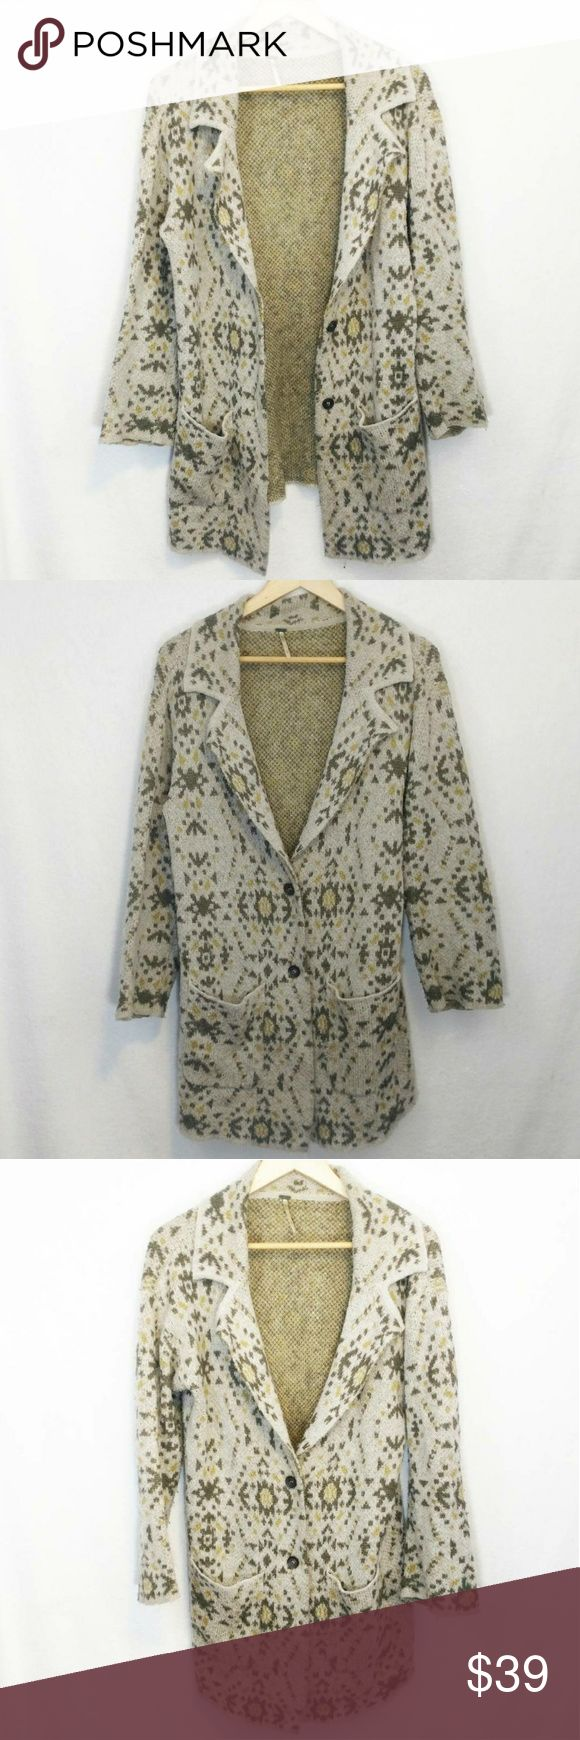 Free People Southwestern Duster Alpaca Cardigan Cardigan by Free People.  A long neutral toned cardigan with a print of geometric southwestern or Aztec shapes of triangles, abstract suns and more.  Has hues of tans, browns and muted yellows.  Has a deep v neck front with a lapel.  Buttons in the front with two buttons.  Has two functional pockets on the front.  Long sleeved.  Made of acrylic, nylon, wool and alpaca.  Has fuzzing and pilling throughout, examples shown in the last photo.  Size…